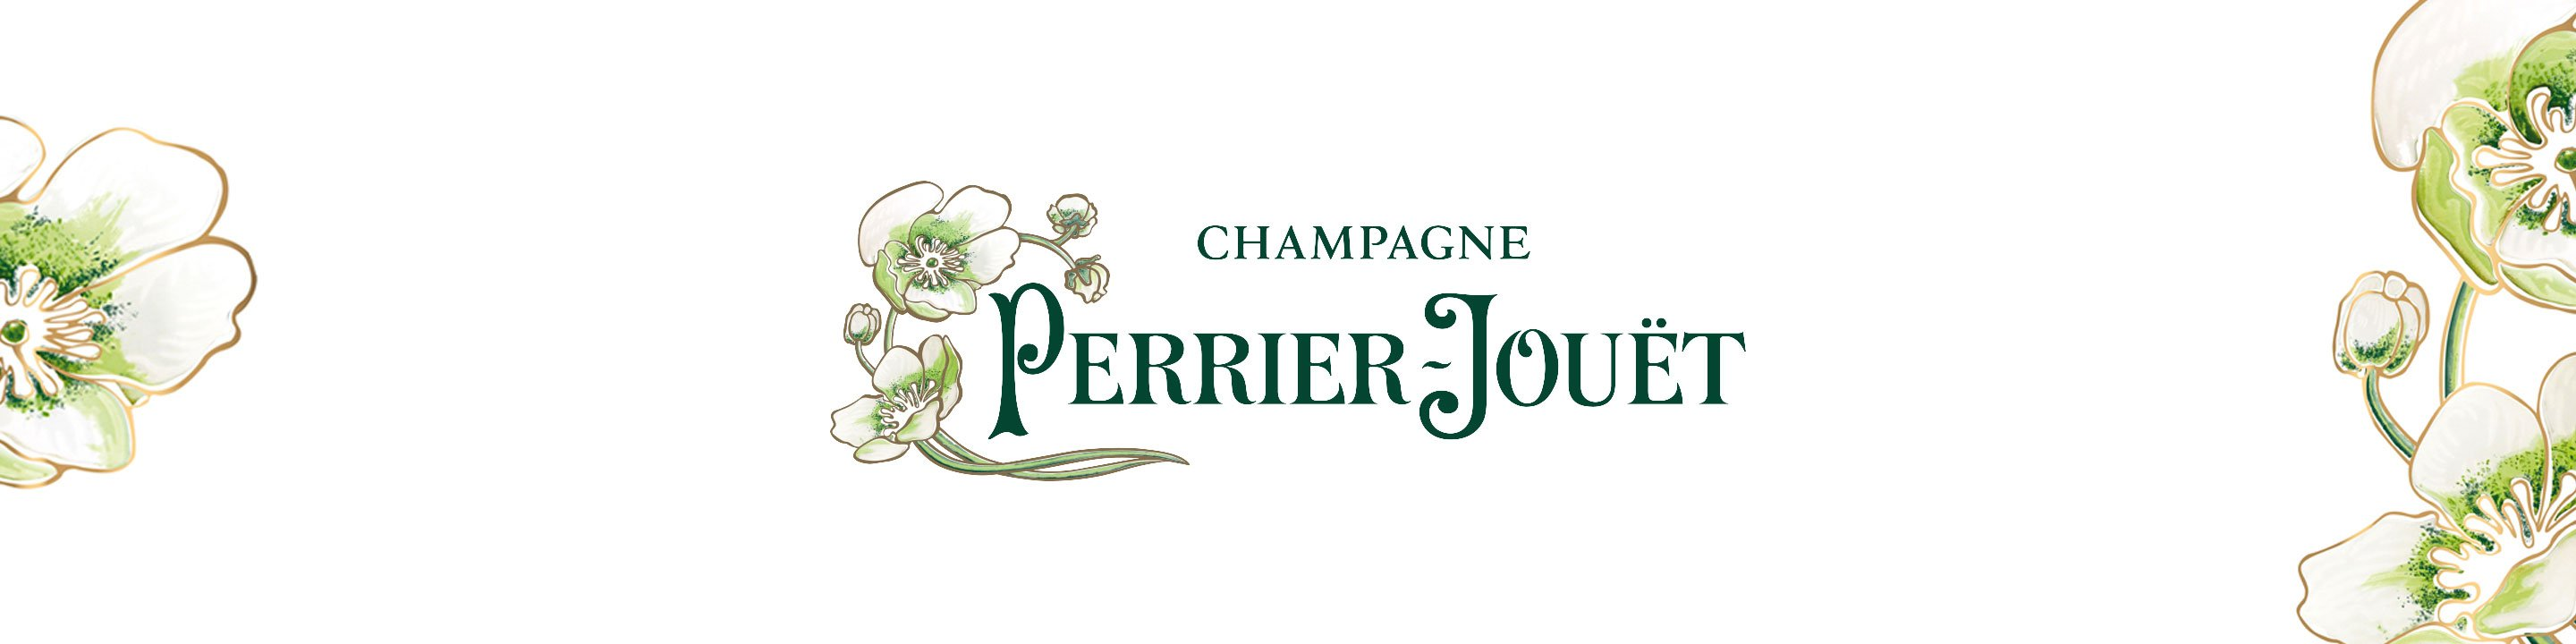 Buy Perrier-Jouet online now from your nearby liquor store via Minibar Delivery.